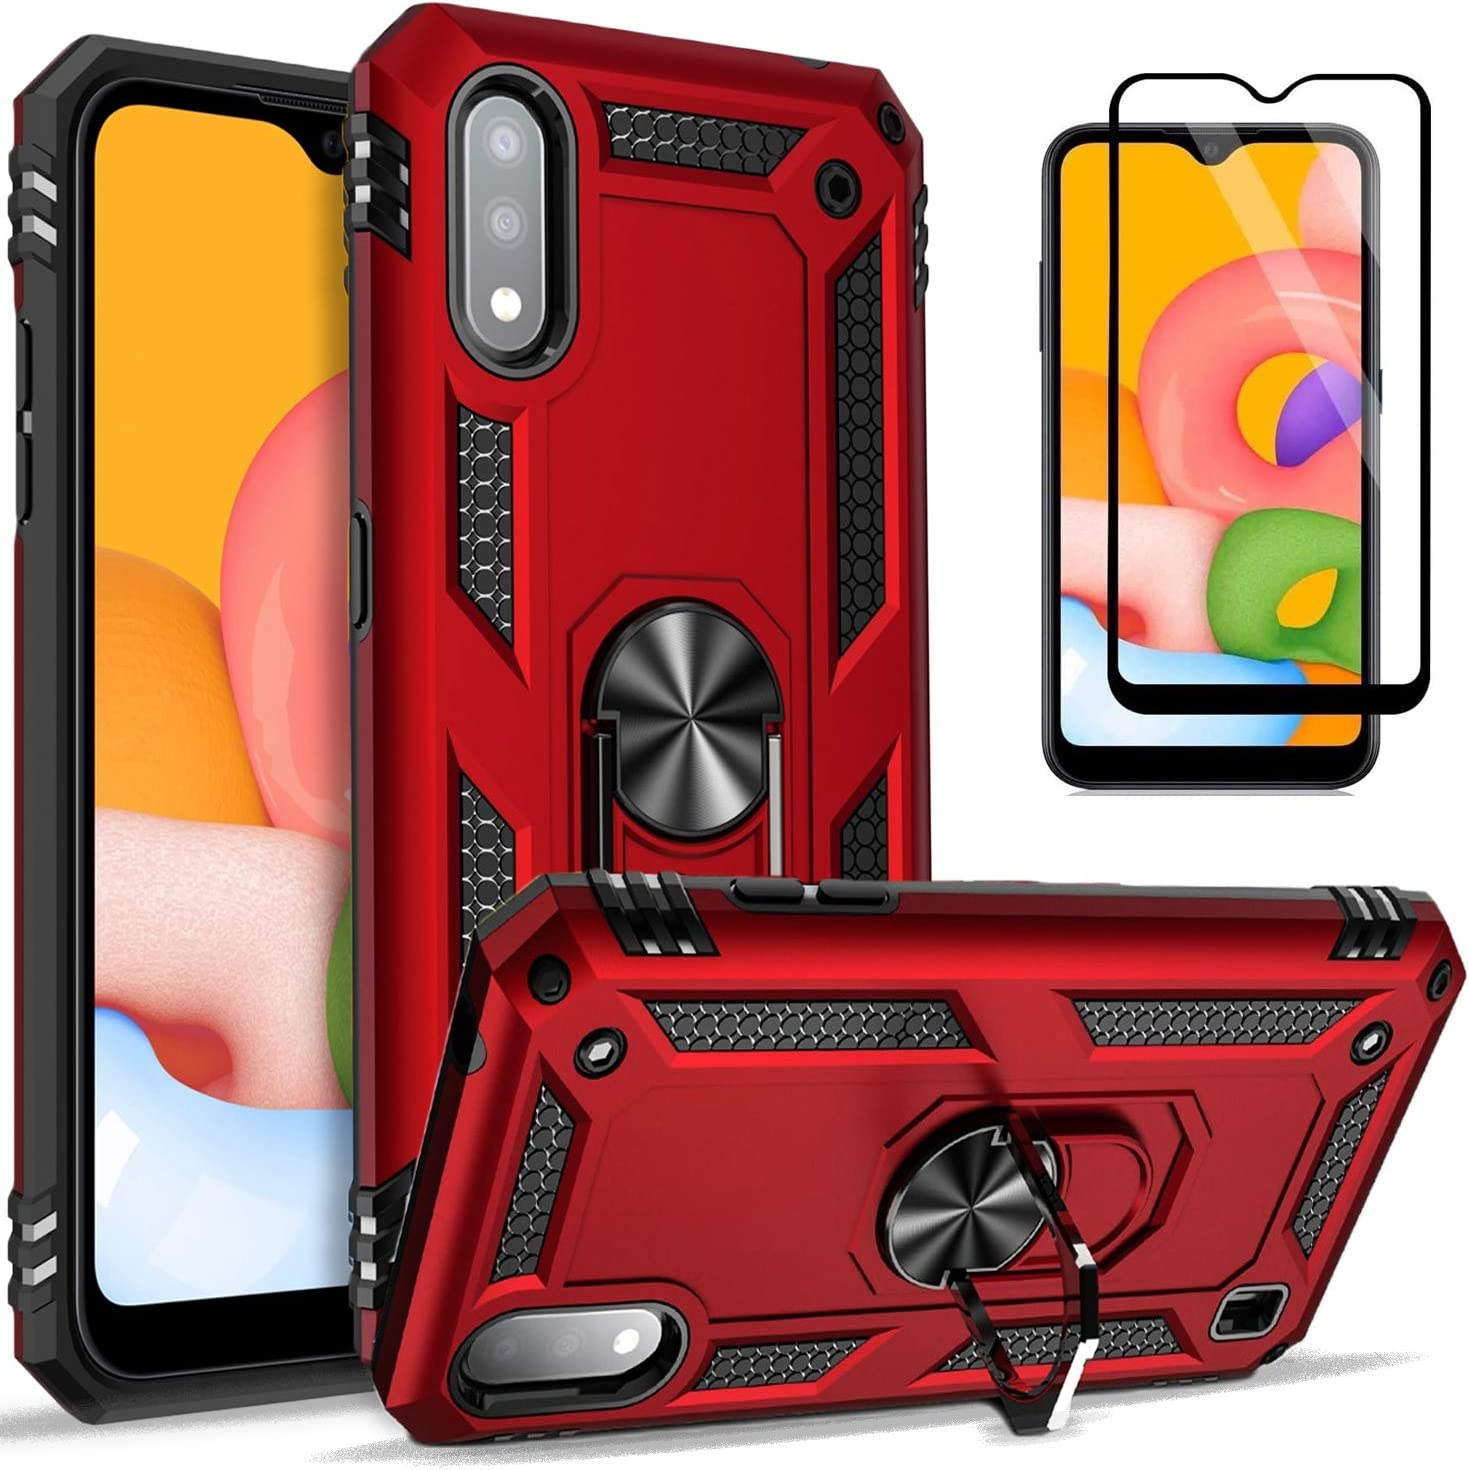 STARSHOP - Samsung Galaxy A01 Phone Case, [NOT FIT A10E/A10/S10] with [Tempered Glass Protector Included] Metal Ring Kickstand Stand Shockproof Drop Protection Phone Cover-Red